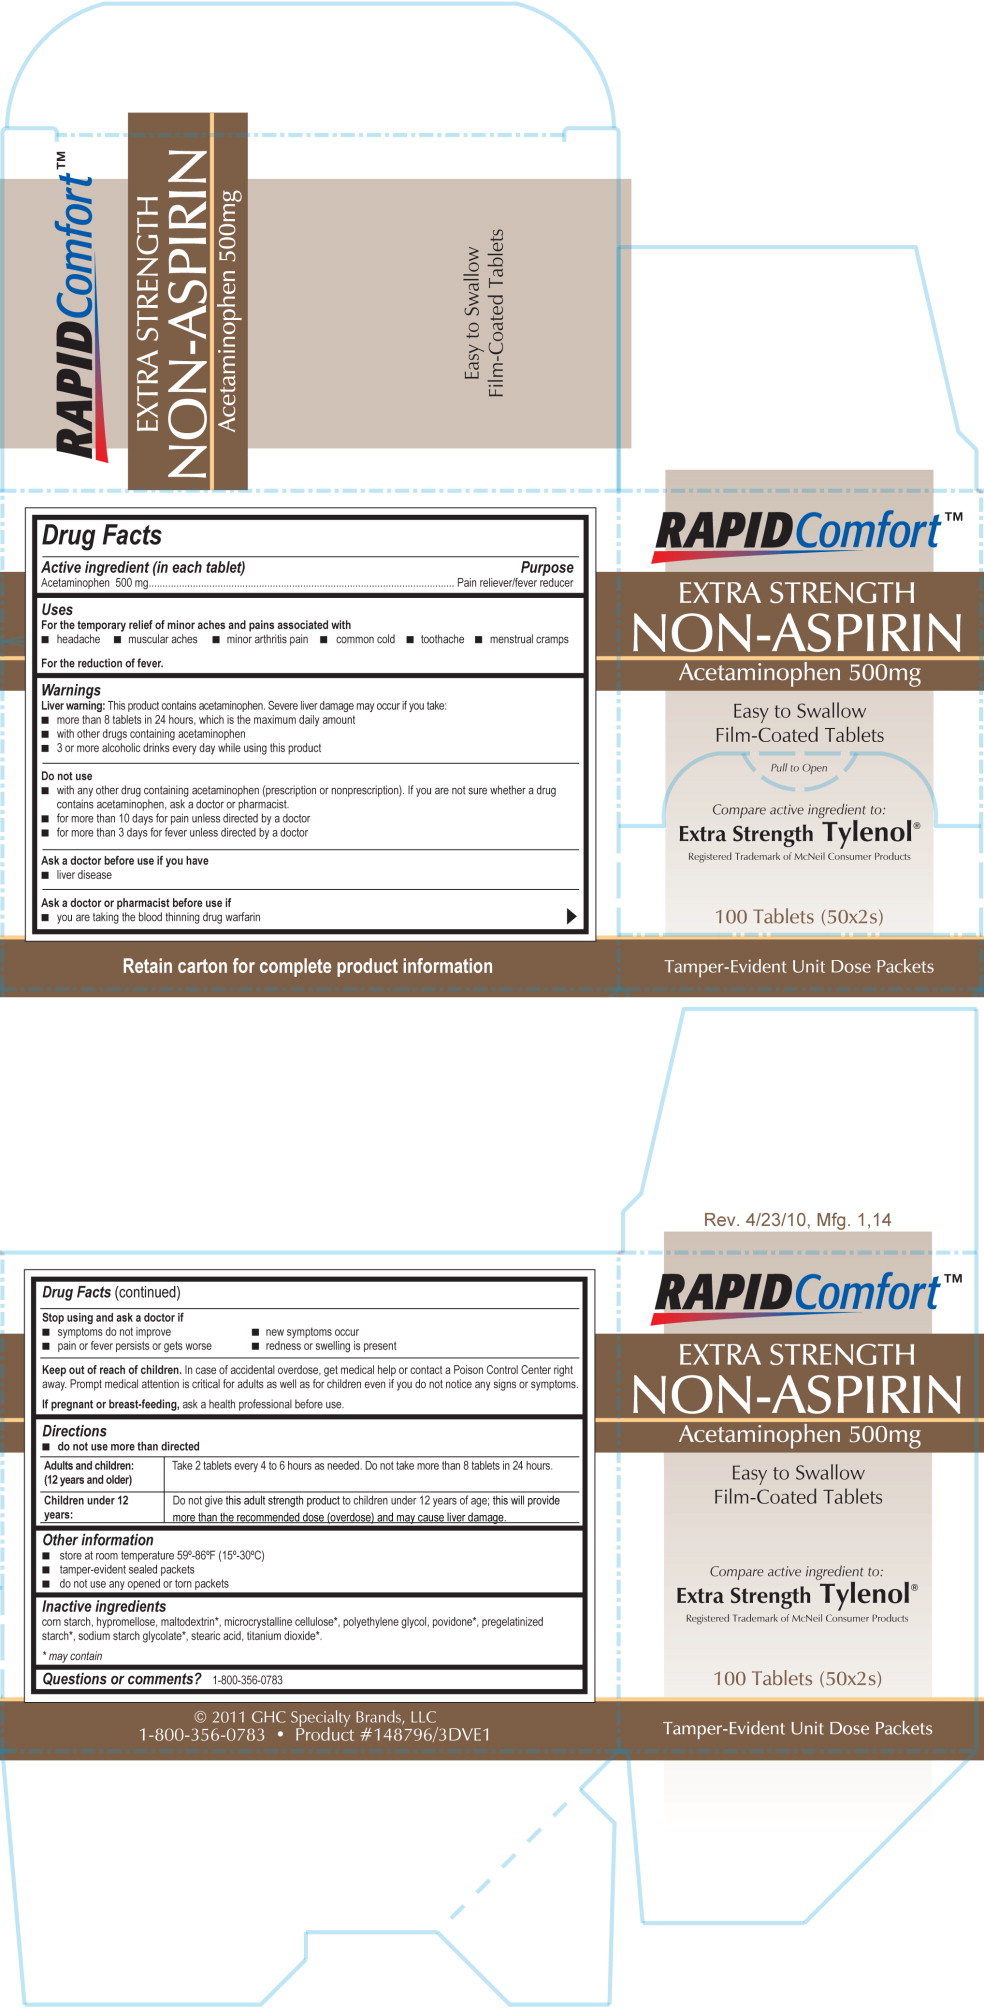 Rapid Comfort Extra Strength Non Aspirin (Acetaminophen) Tablet, Film Coated [Lab Safety Supply, Inc.]